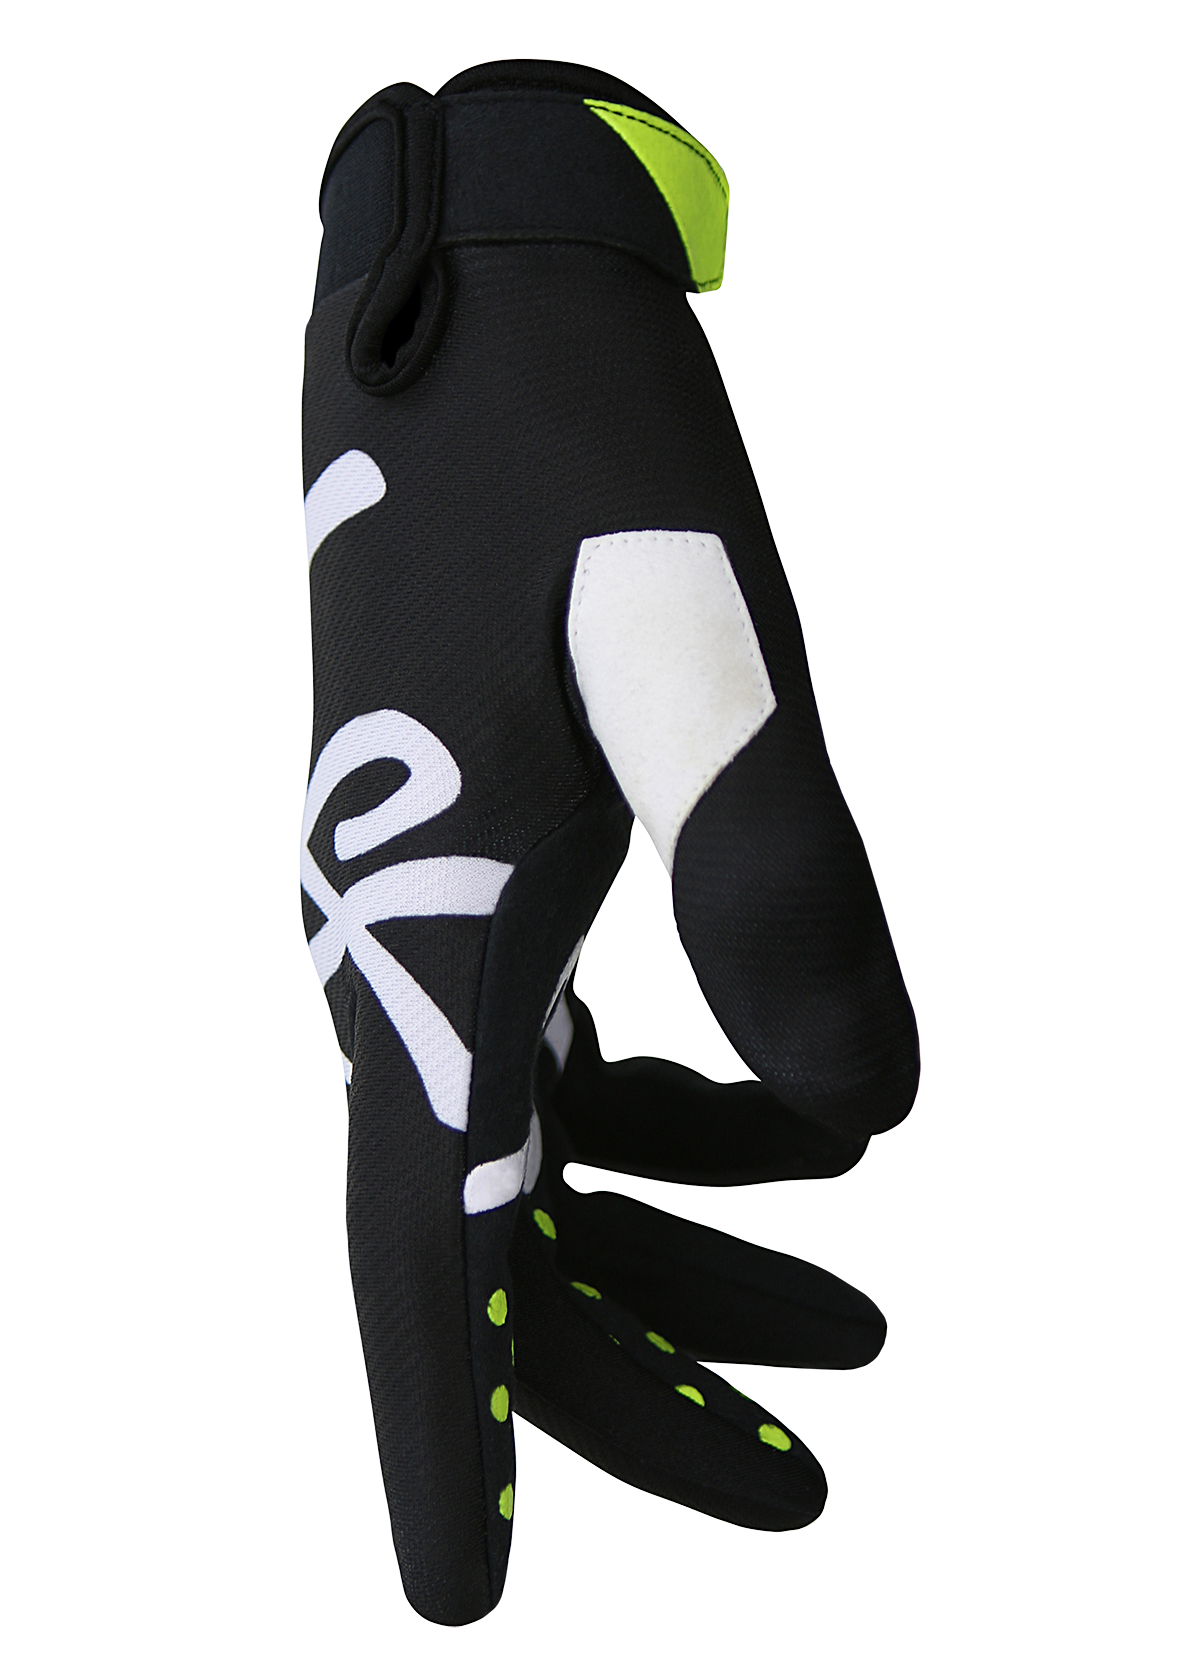 deft family motocross mtb bmx glove youth eqvlnt solid black side